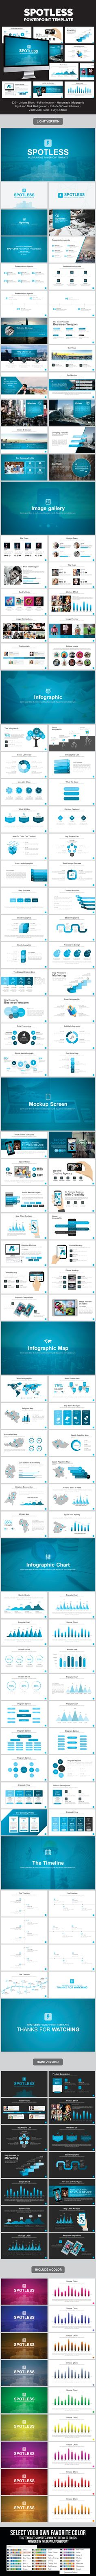 Spotless PowerPoint Presentation Template #design #slides Download: http://graphicriver.net/item/spotless-presentation-template/13215178?ref=ksioks